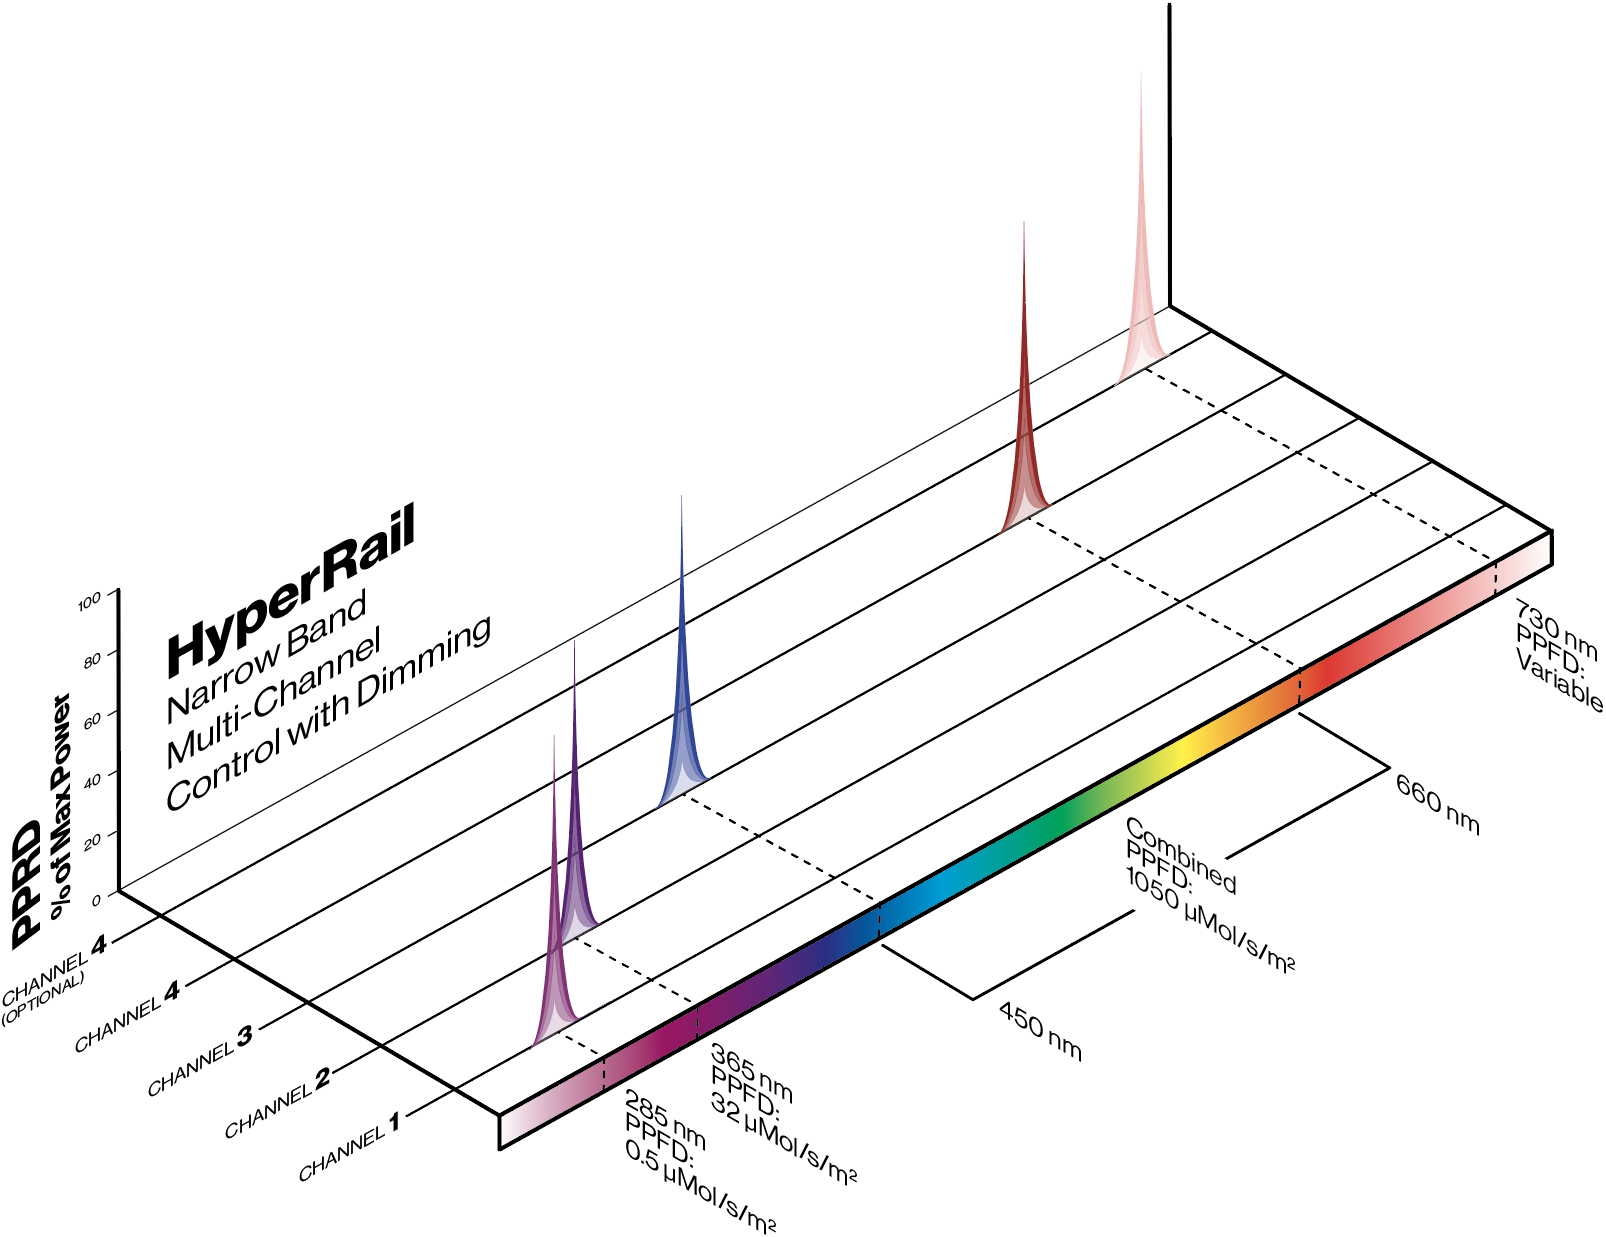 HyperRail_NarrowBand.png